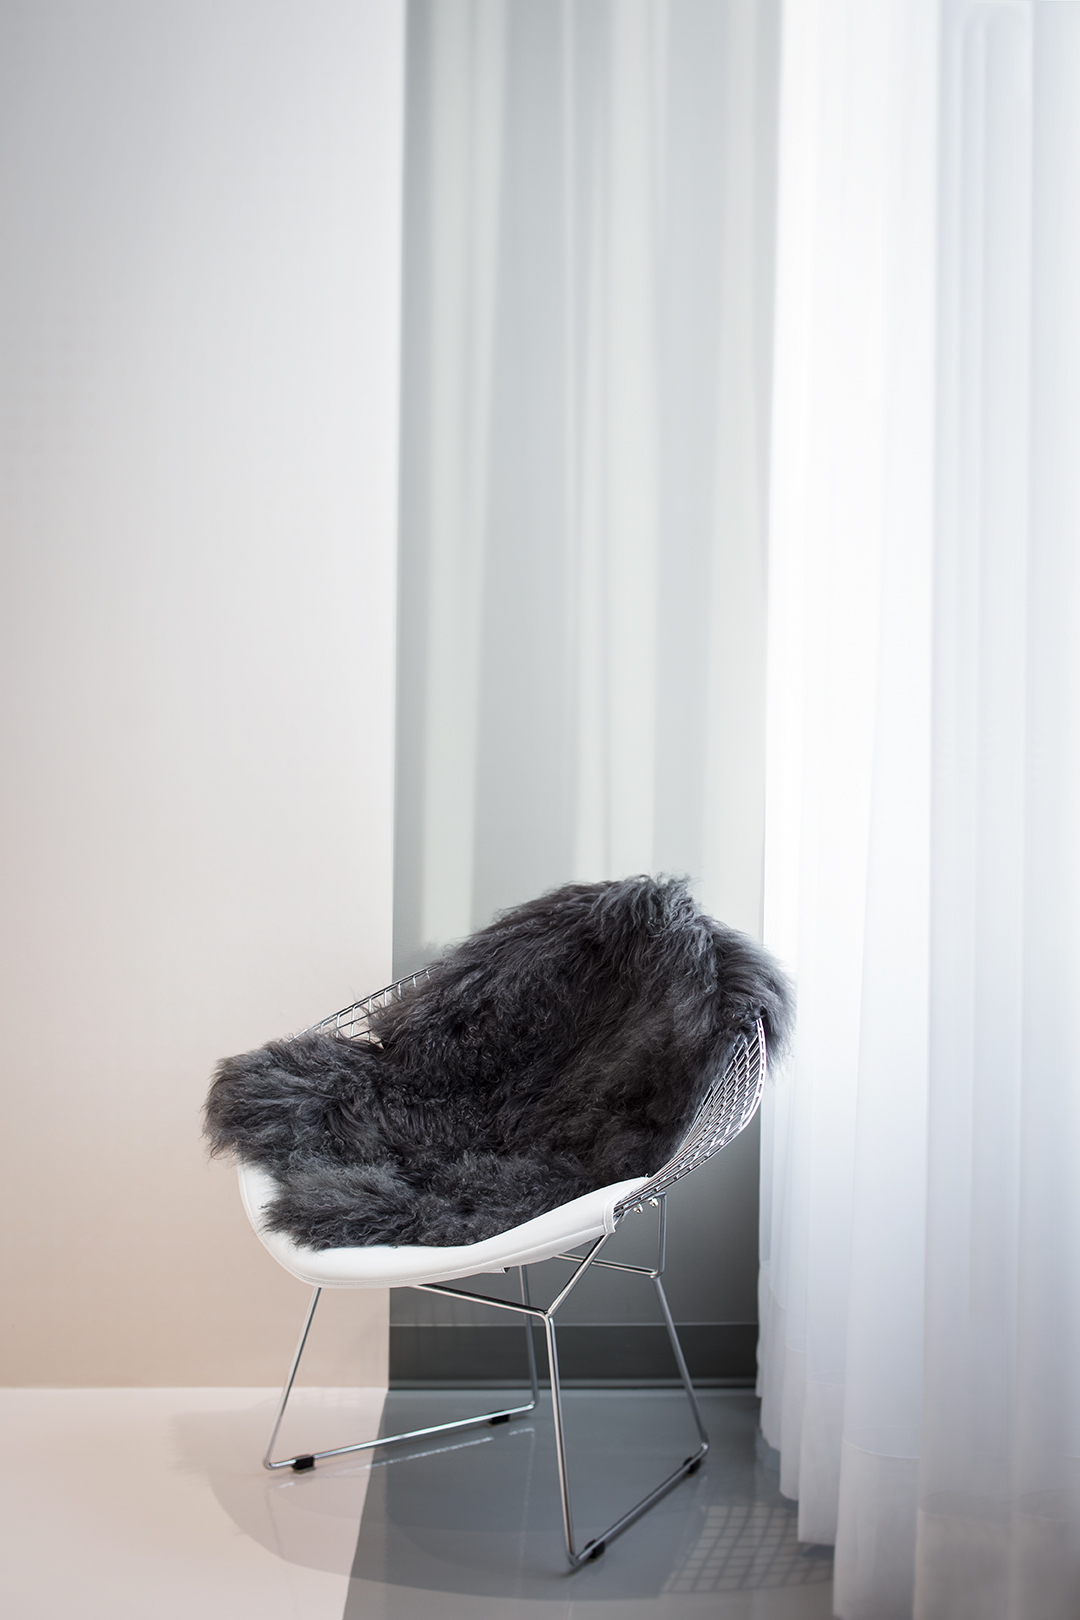 Univers_NuFace_2.3_ADHOC_architectes_©Adrien_Williams_07